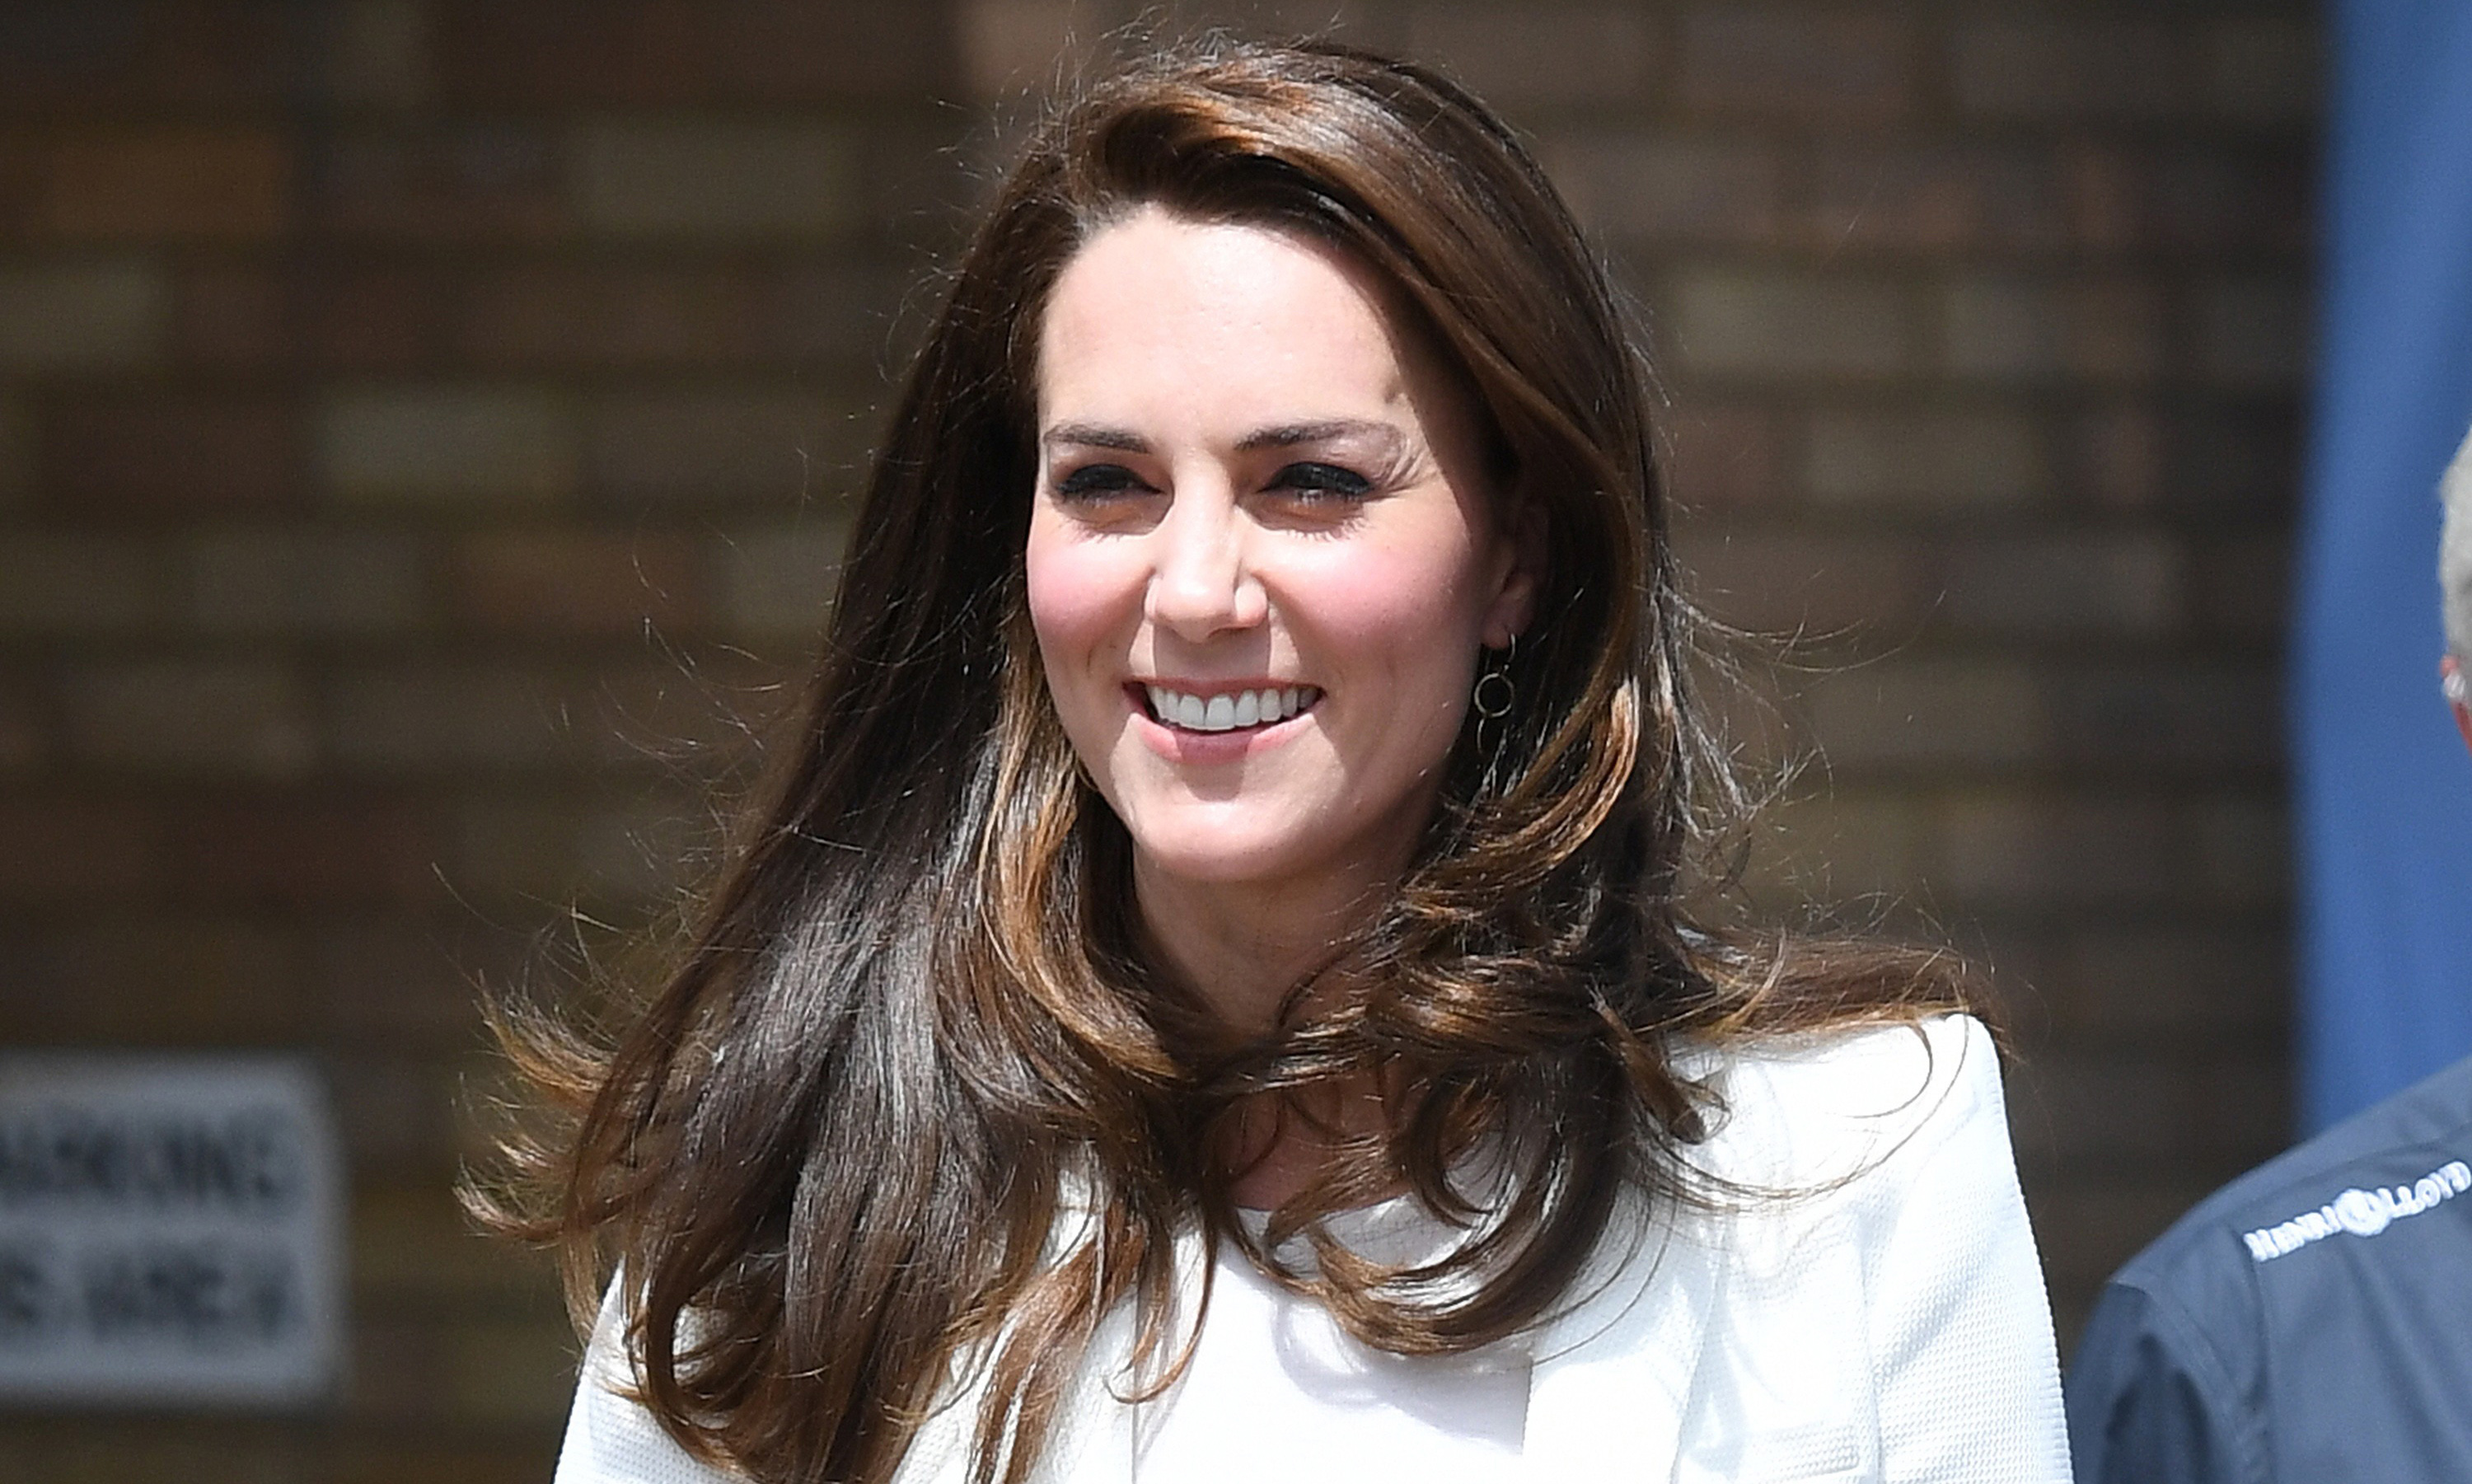 Kate Middleton Didn't Wear Her Engagement Ring Today for an Important Reason